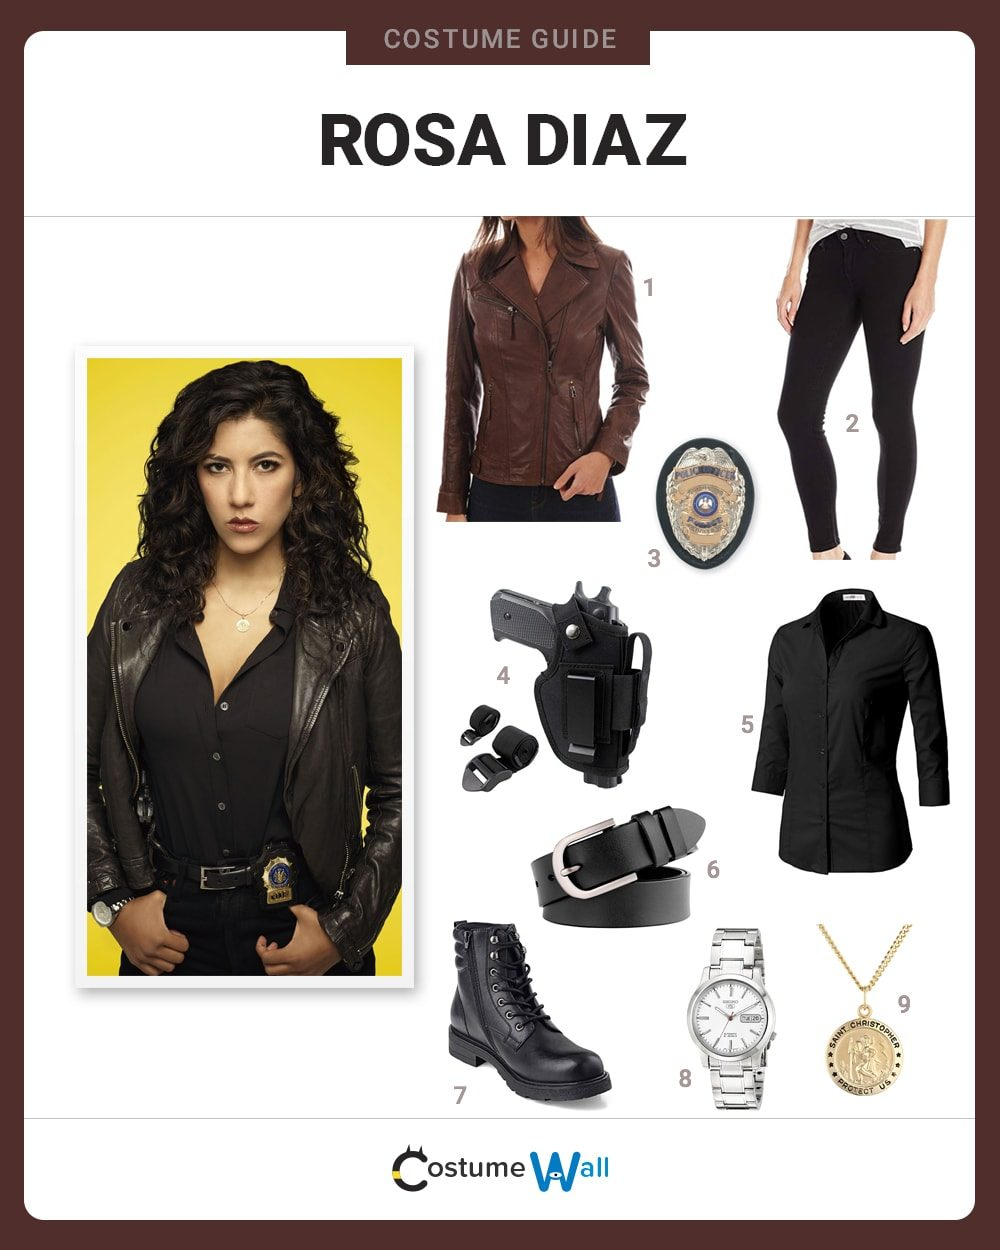 Rosa Diaz Costume Guide